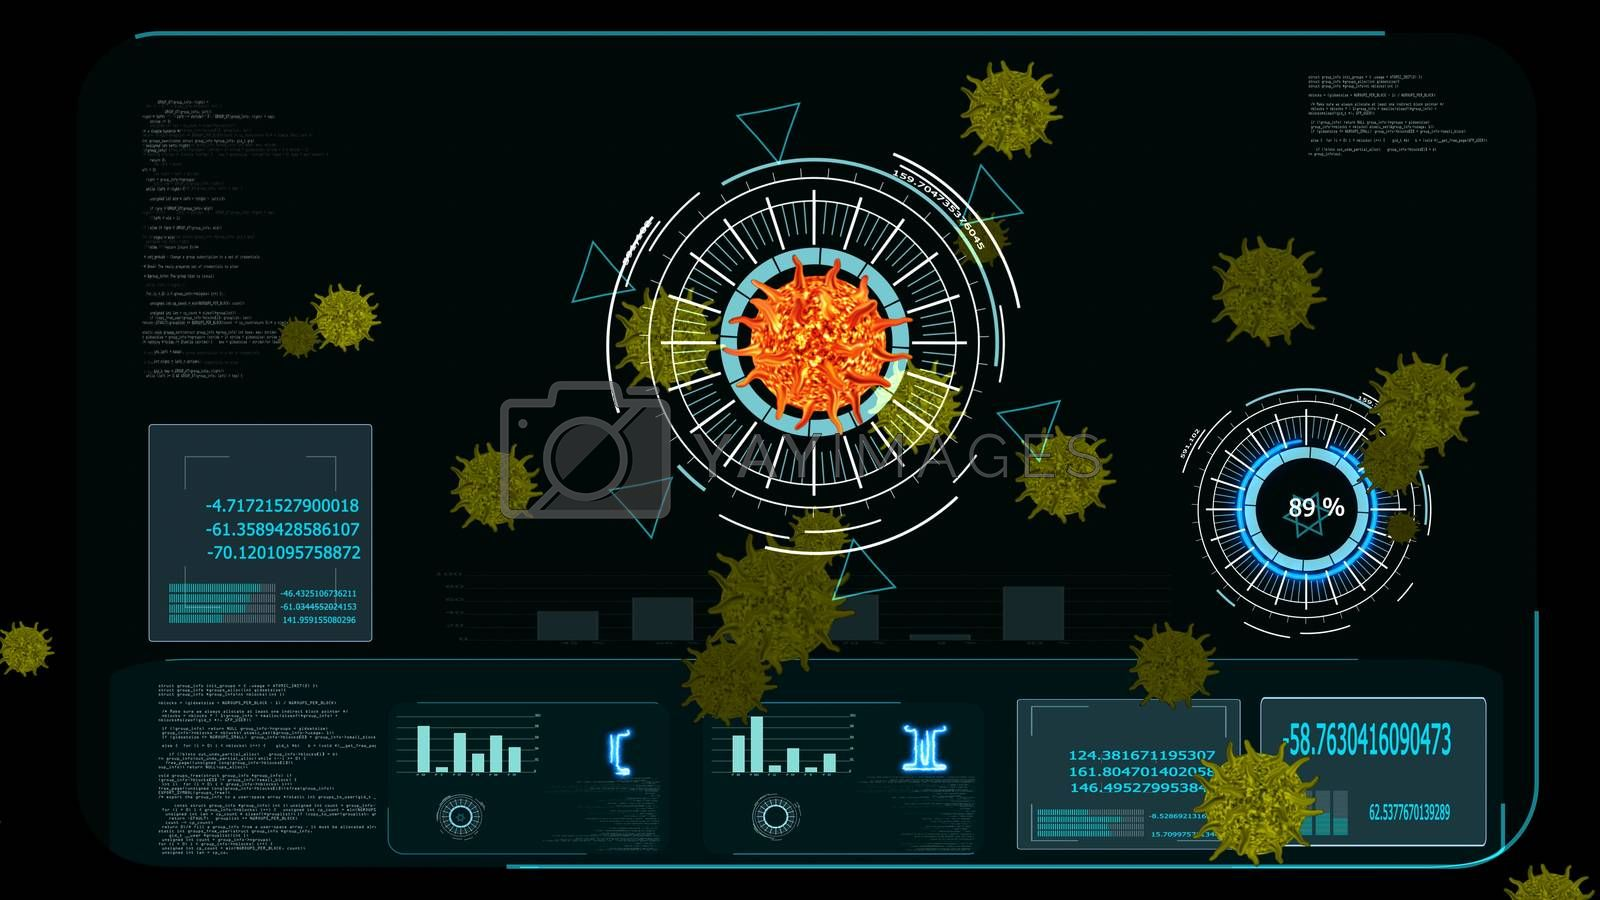 lava color virus covid 19 digital graph was analysis to find vaccine and medicine and yellow another virus on monitor